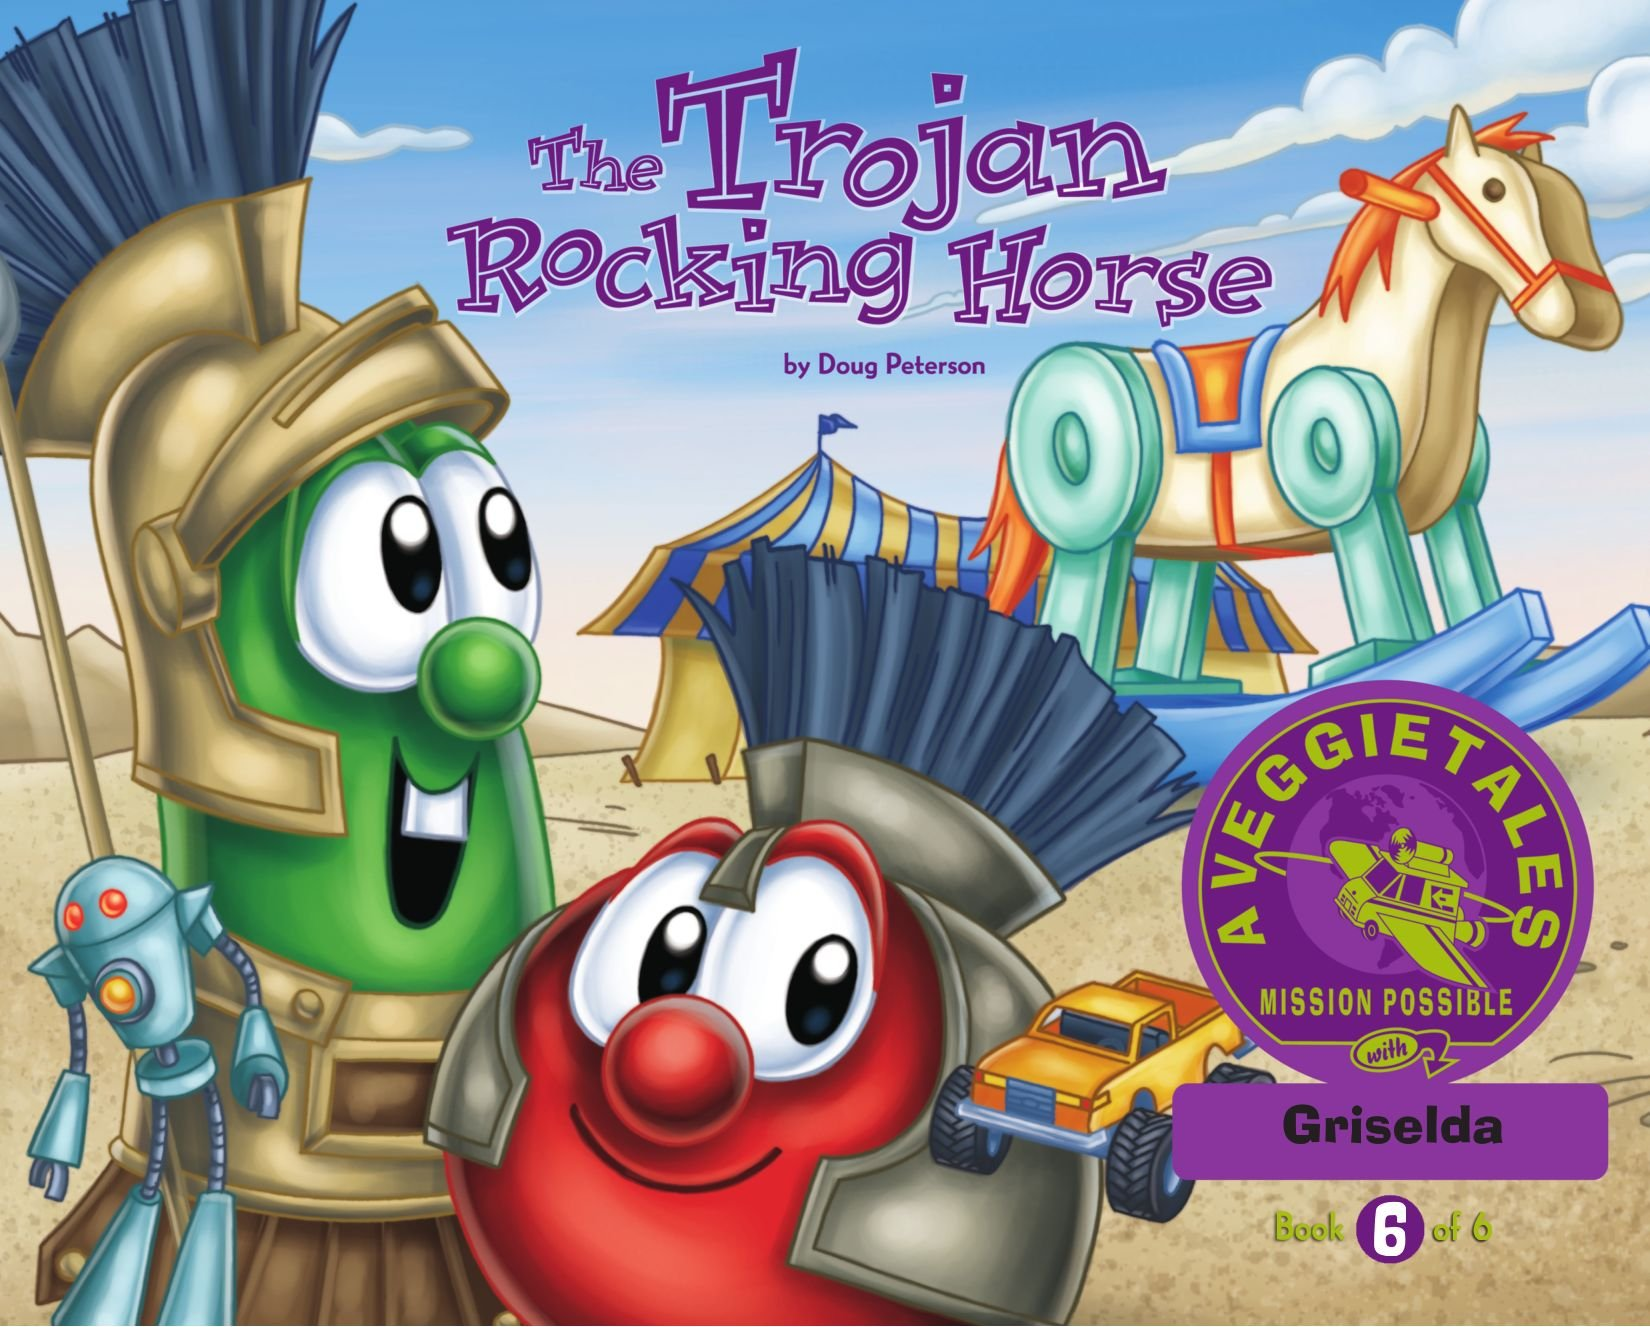 The Trojan Rocking Horse - VeggieTales Mission Possible Adventure Series #6: Personalized for Griselda (Girl) ebook